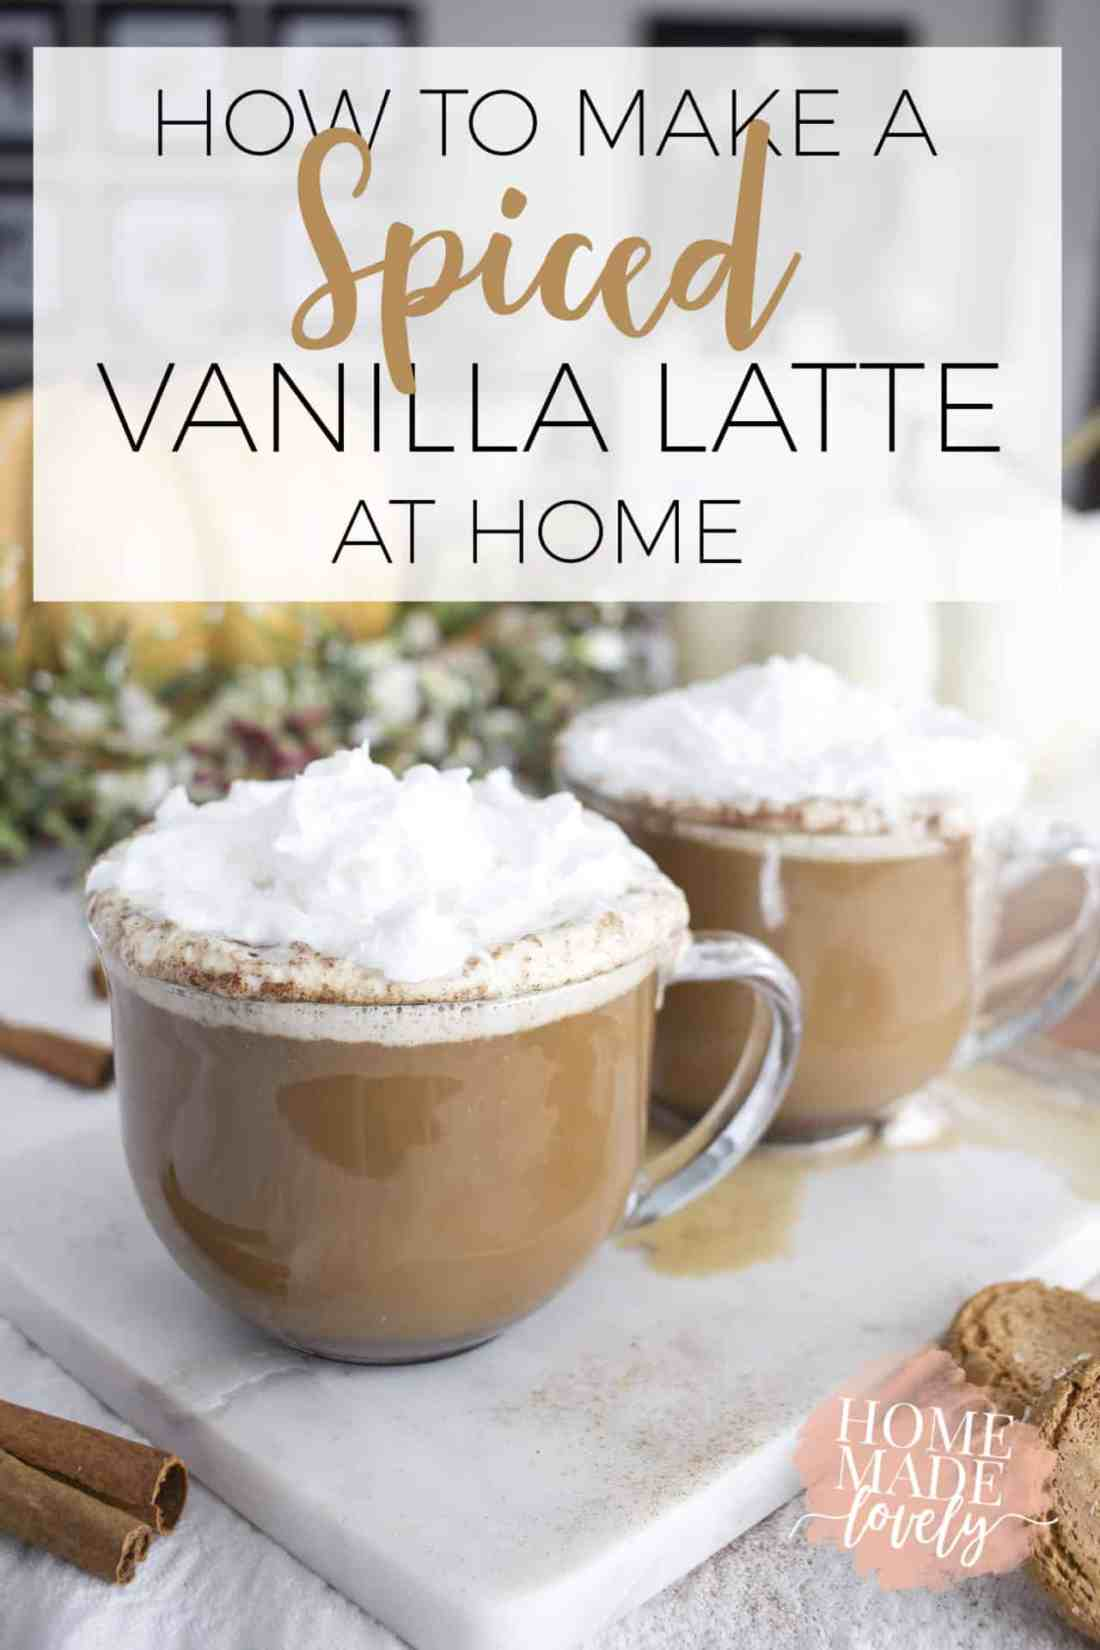 How to make a spiced vanilla latte at home pin